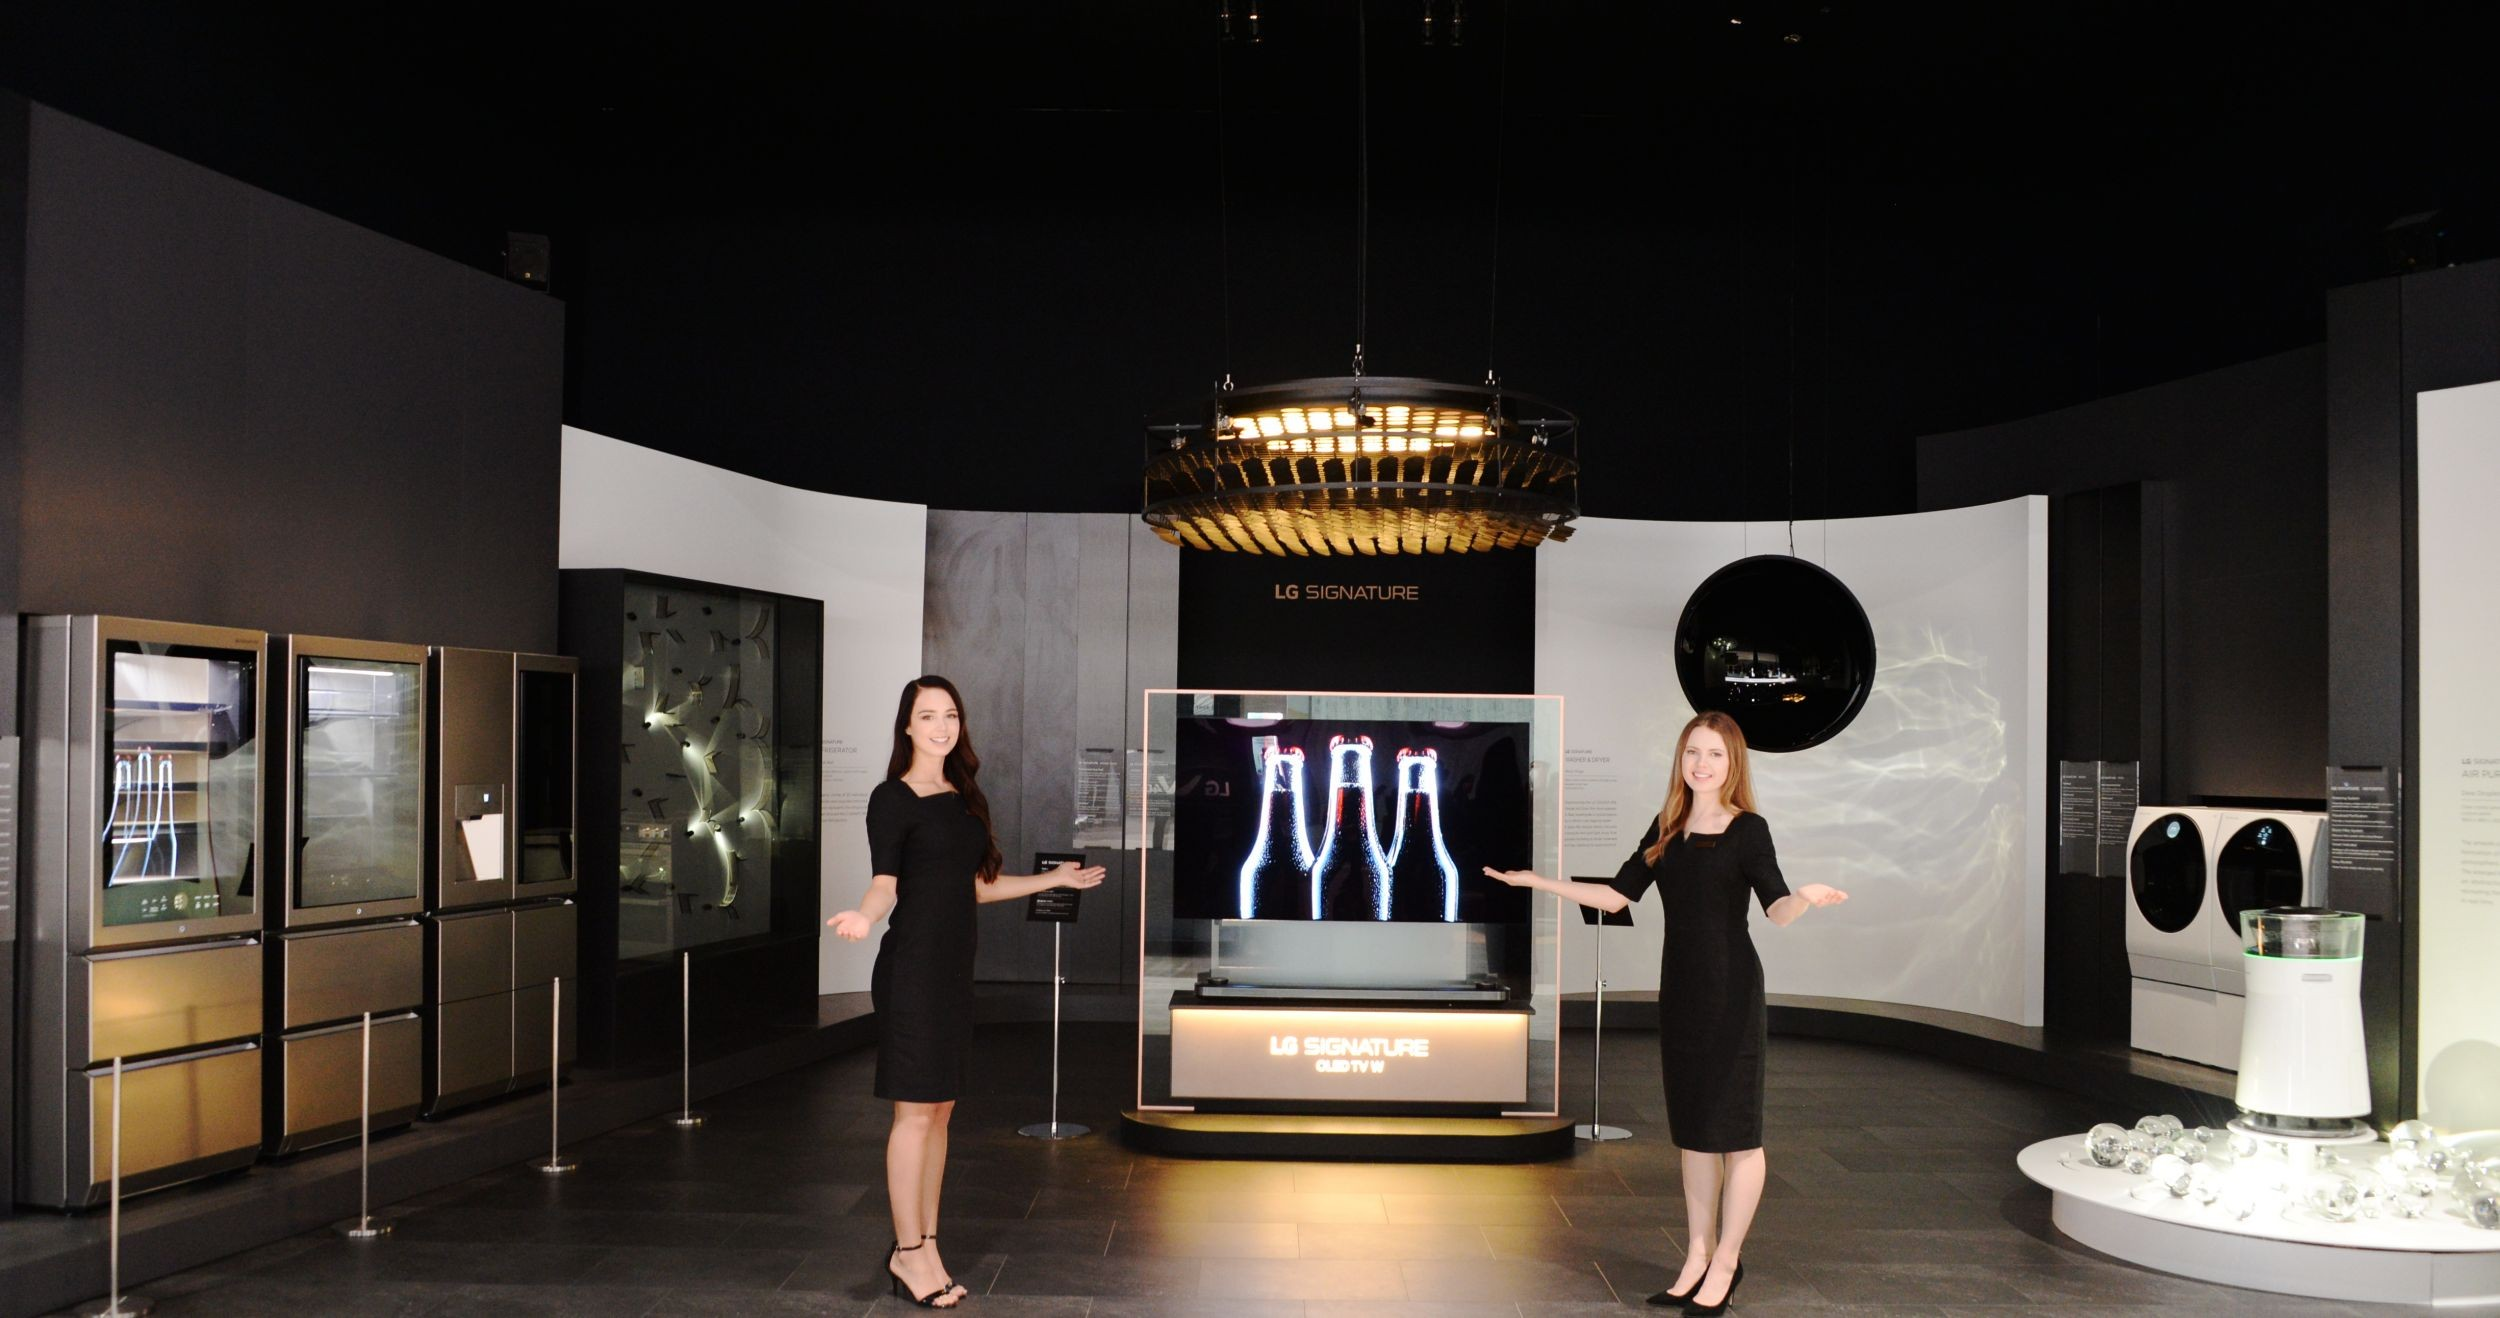 Two female models open their arms up to invite people to the LG SIGNATURE brand zone.